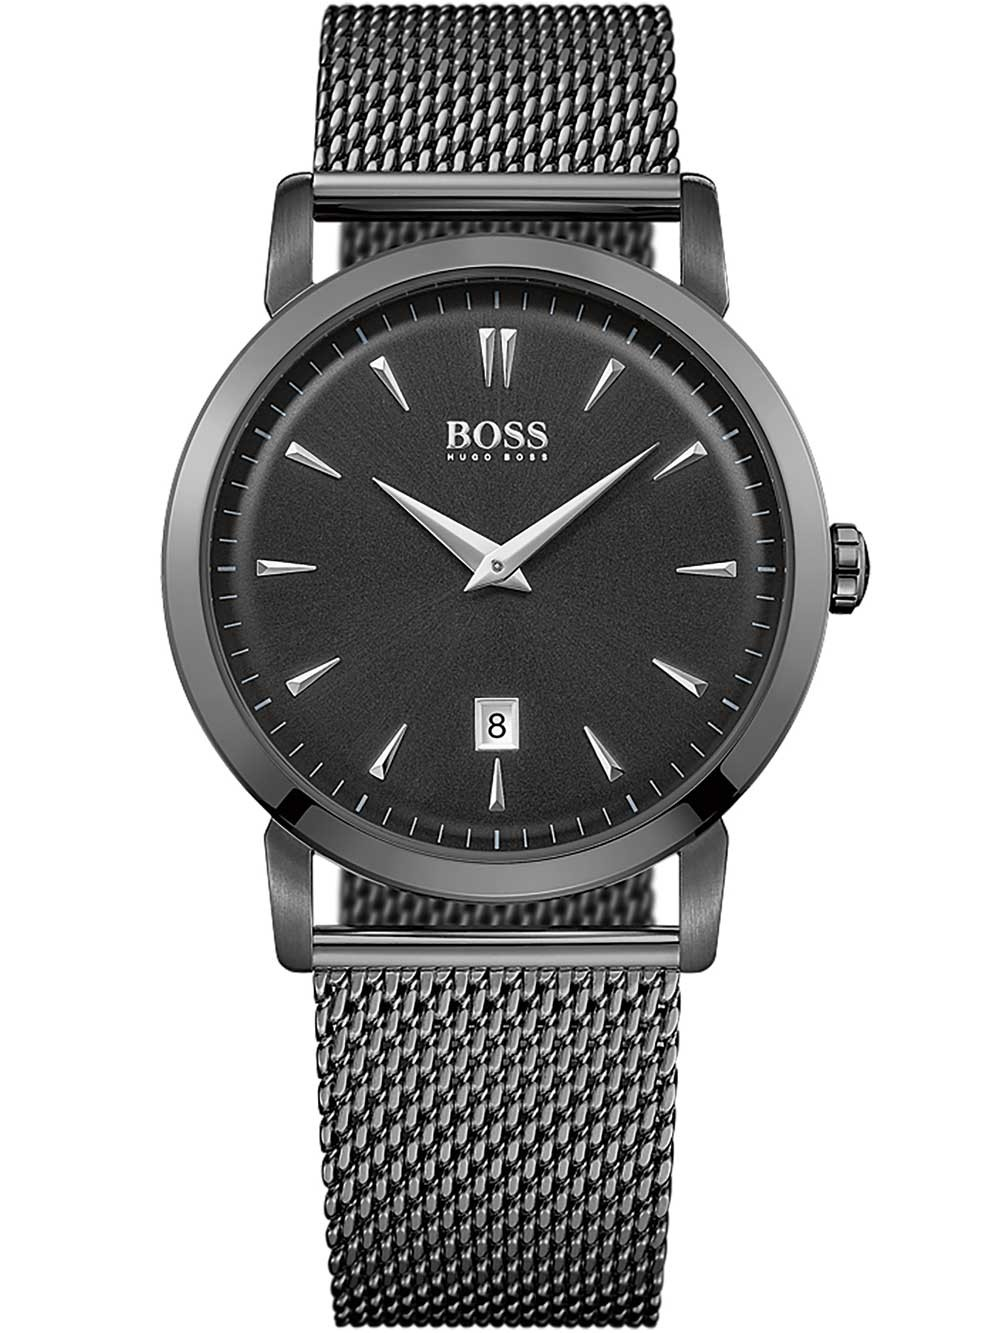 ceas barbatesc hugo boss 1513235 3atm 40mm